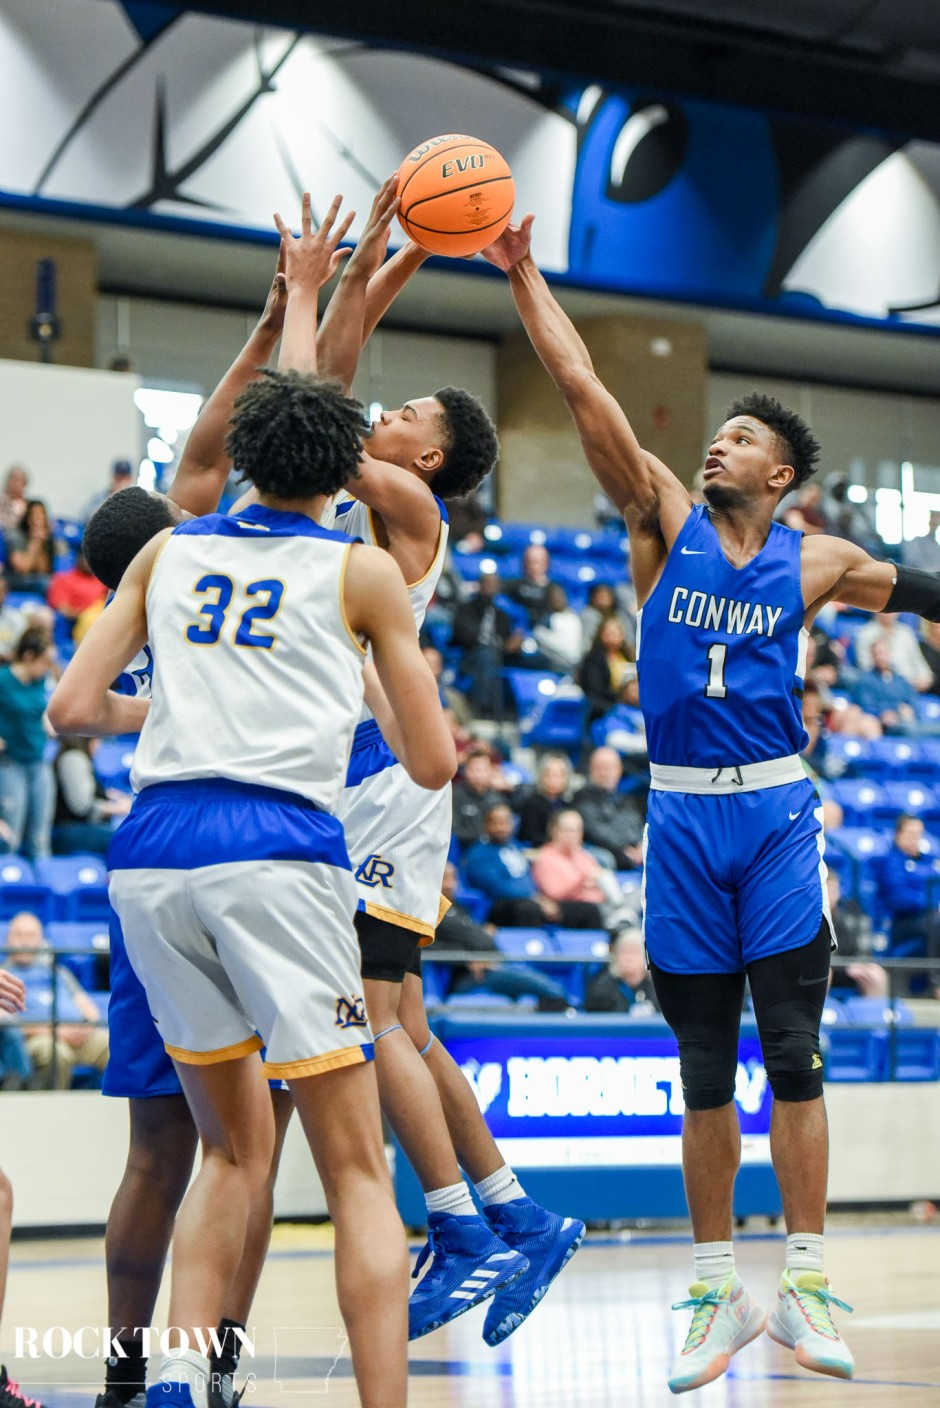 NLR_conway_bball_2020(i)-32